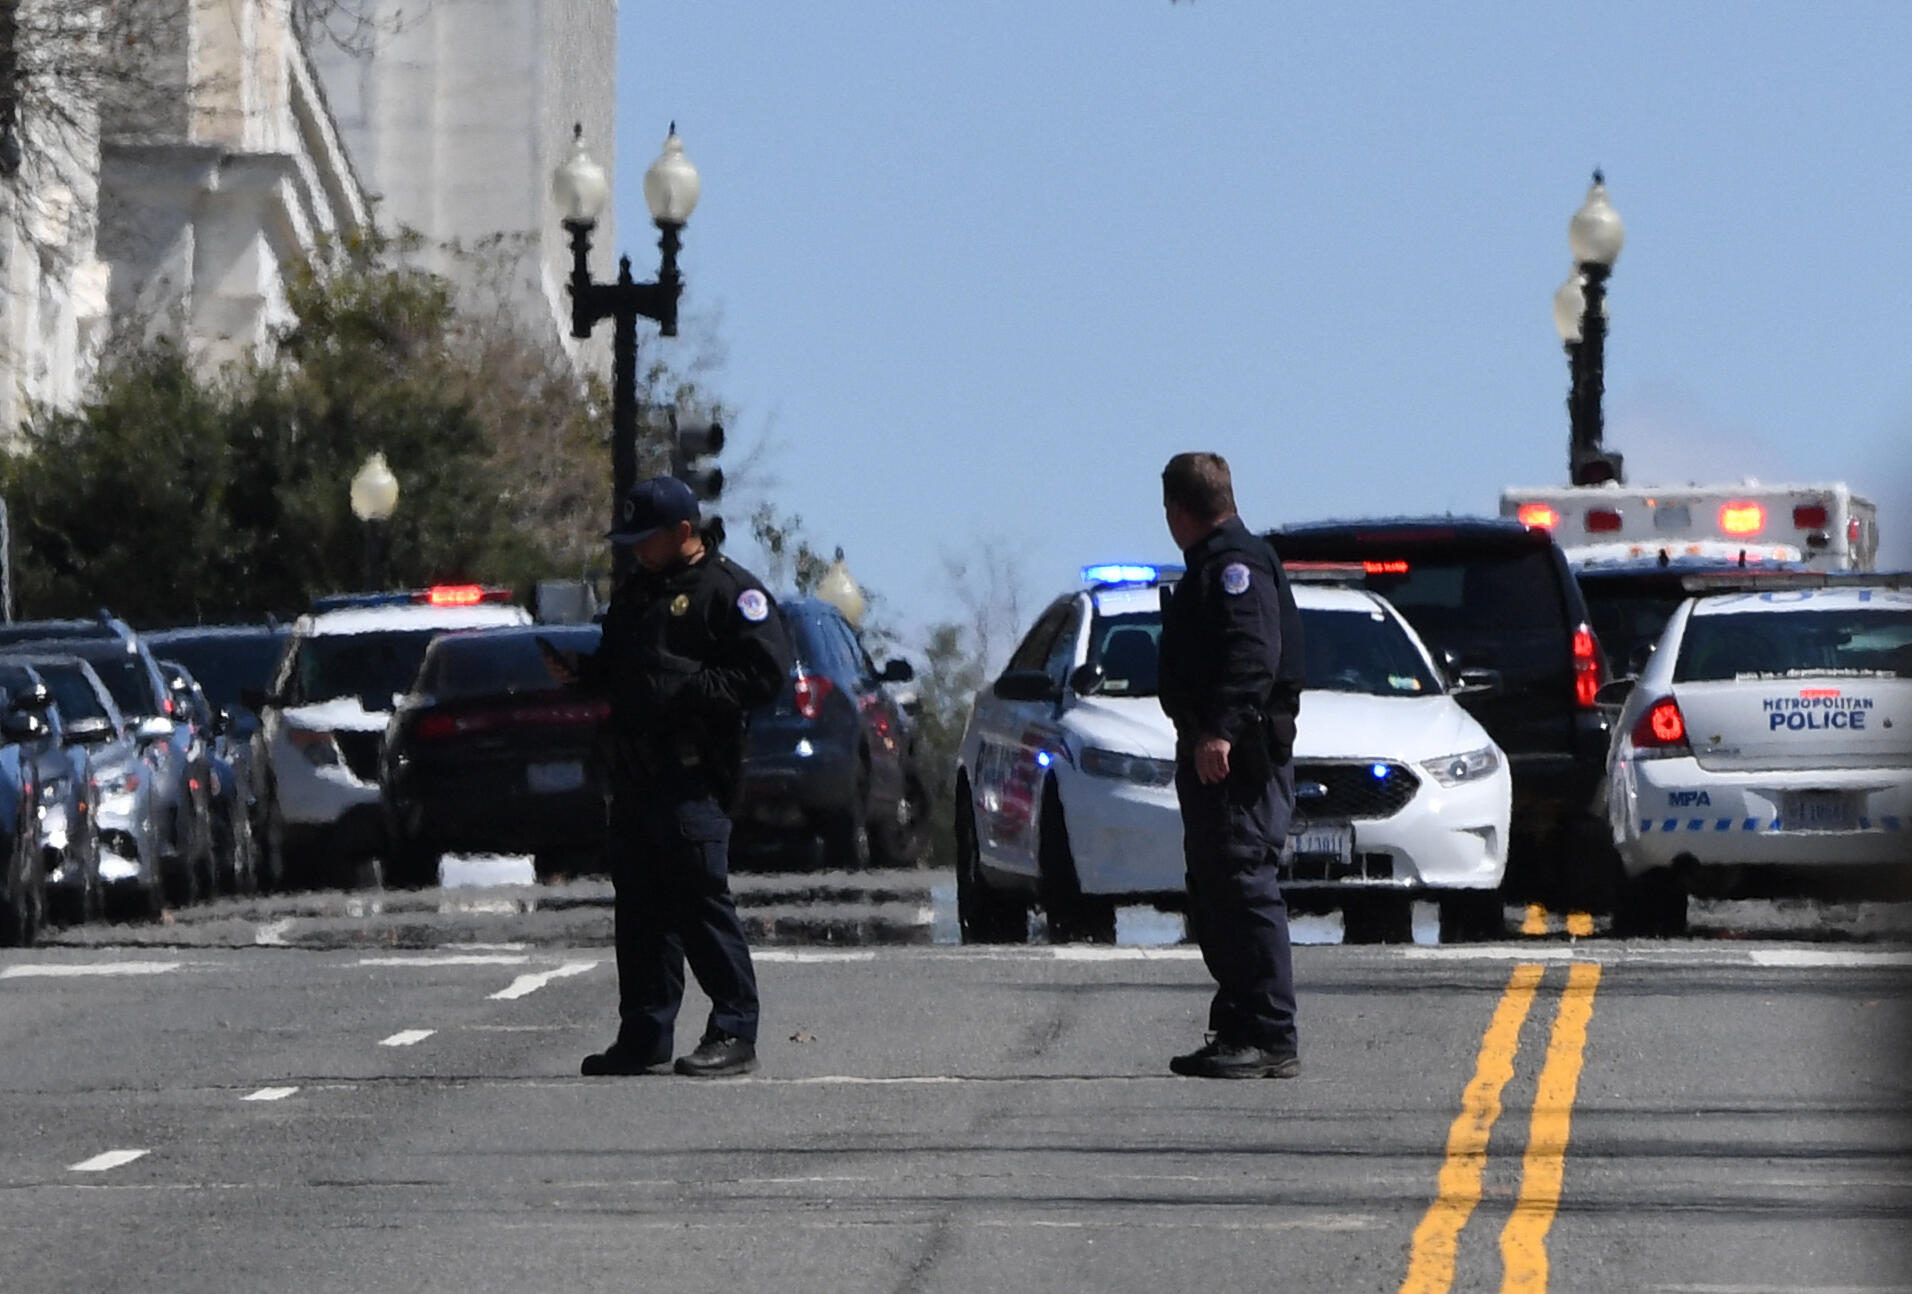 <p>US Capitol under lockdown after Auto rams barricade thumbnail